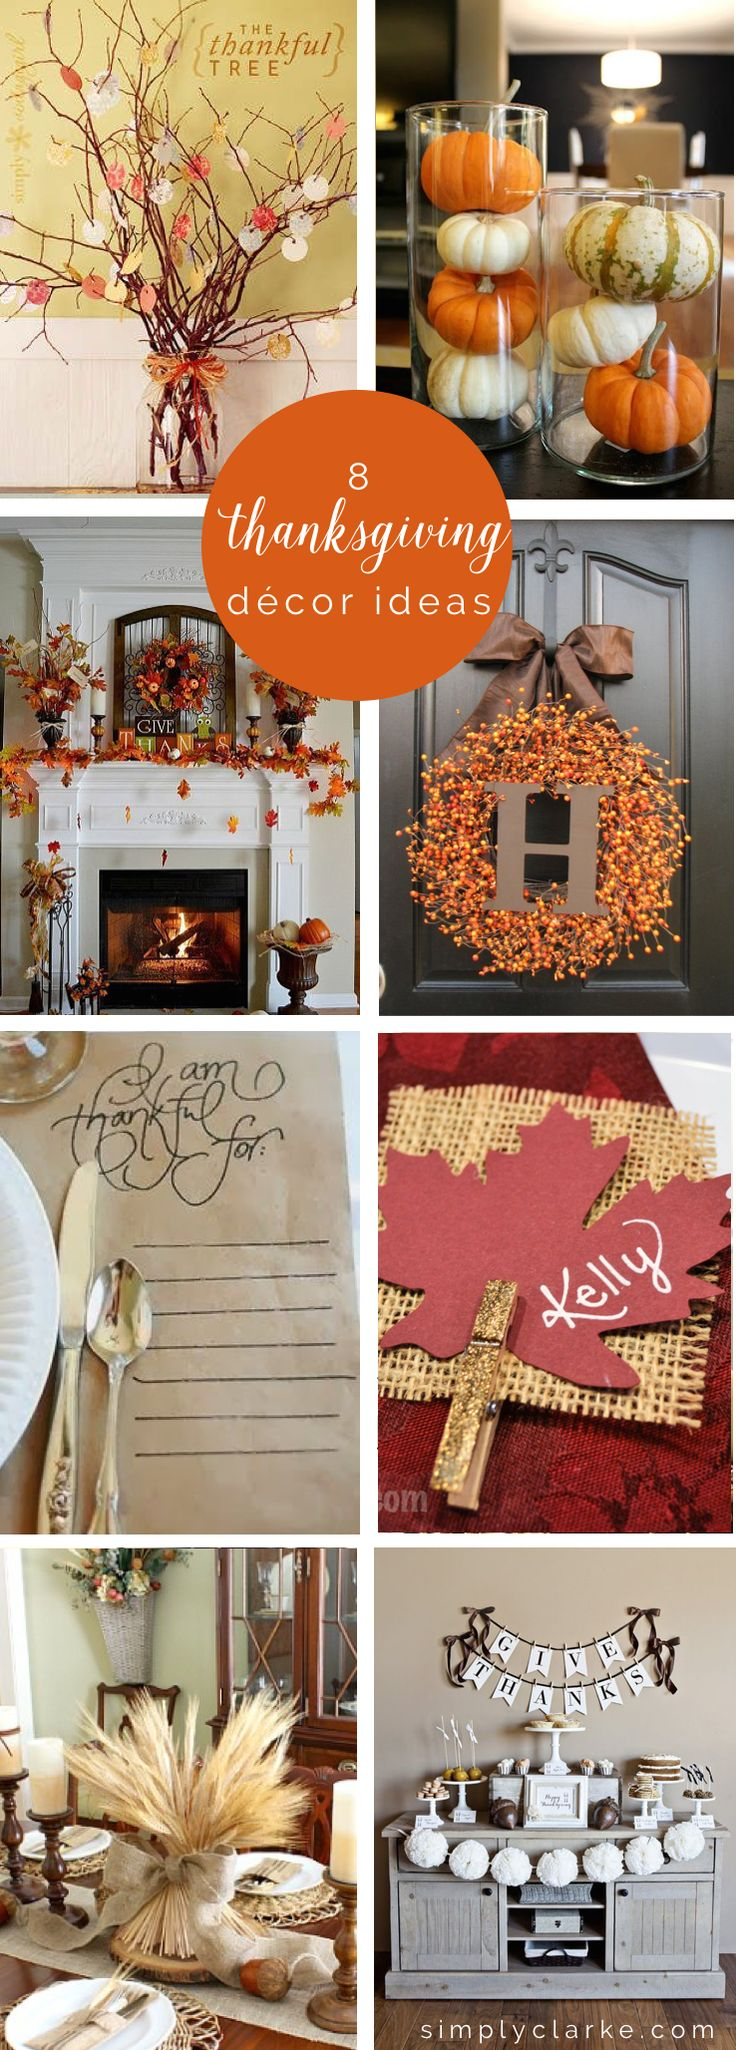 Diy thanksgiving decor pinterest - 8 Thanksgiving Decor Ideas